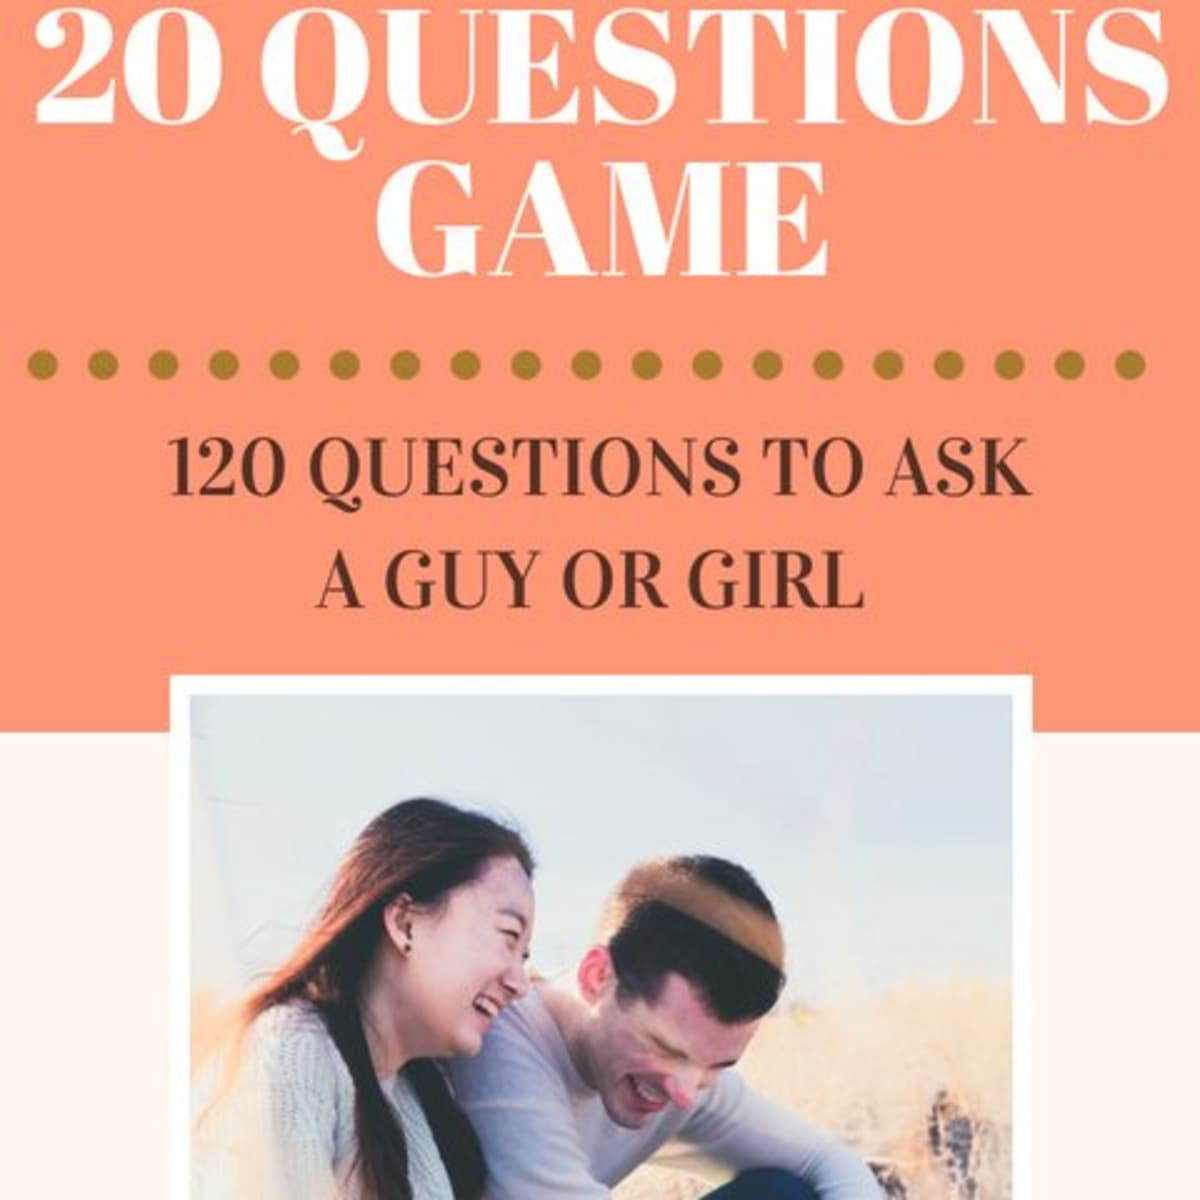 Are good 21 questions to ask a girl